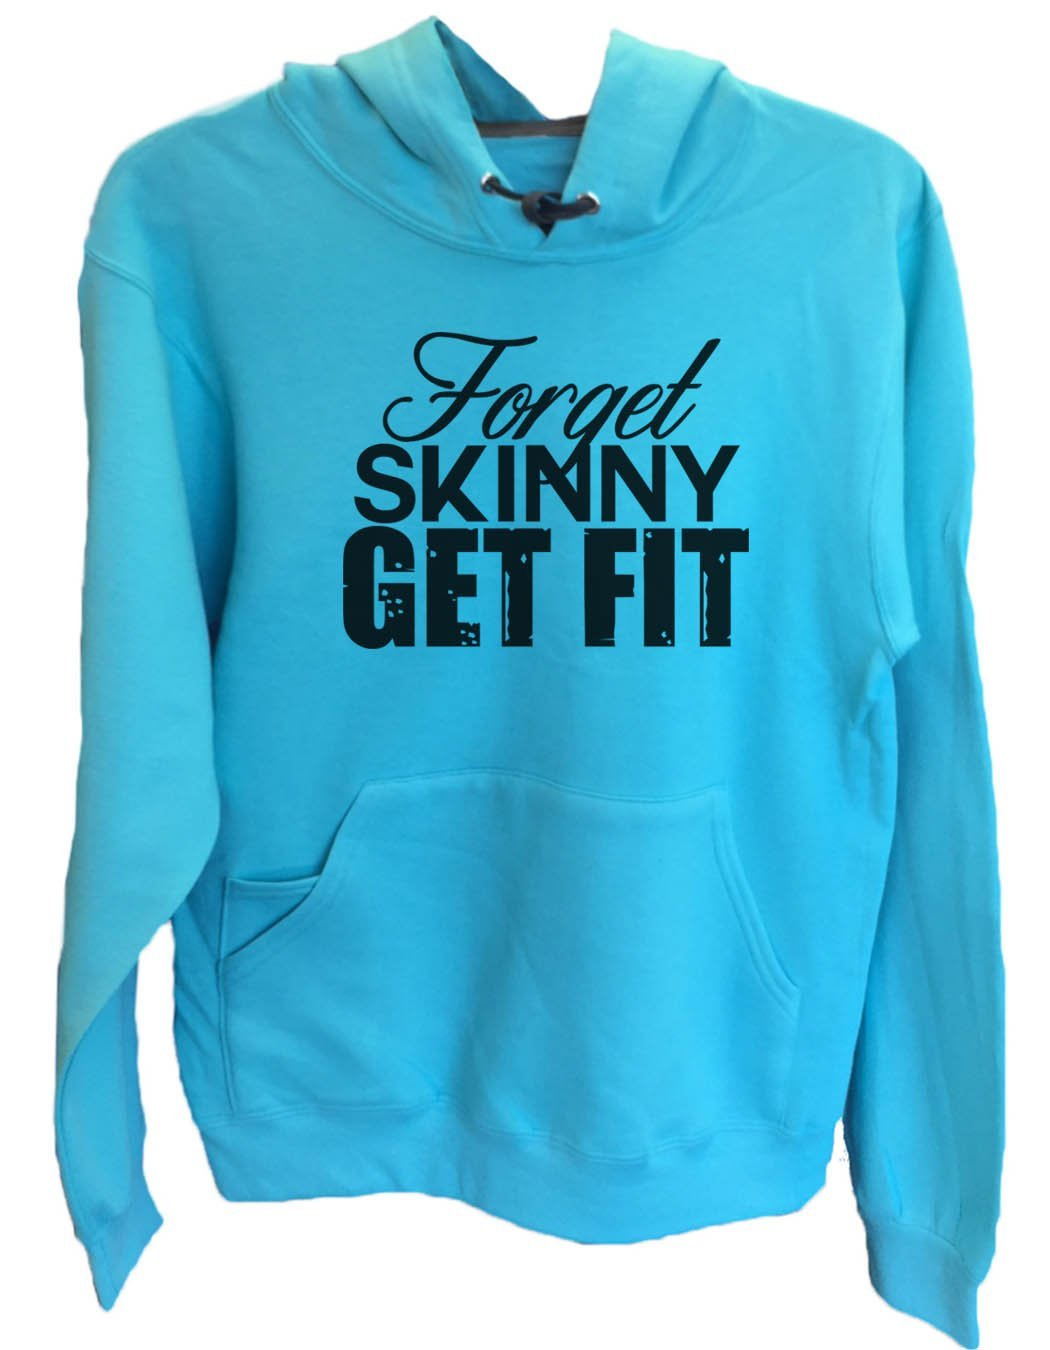 UNISEX HOODIE - Forget Skinny Get Fit - FUNNY MENS AND WOMENS HOODED SWEATSHIRTS - 2130 Funny Shirt Small / Turquoise